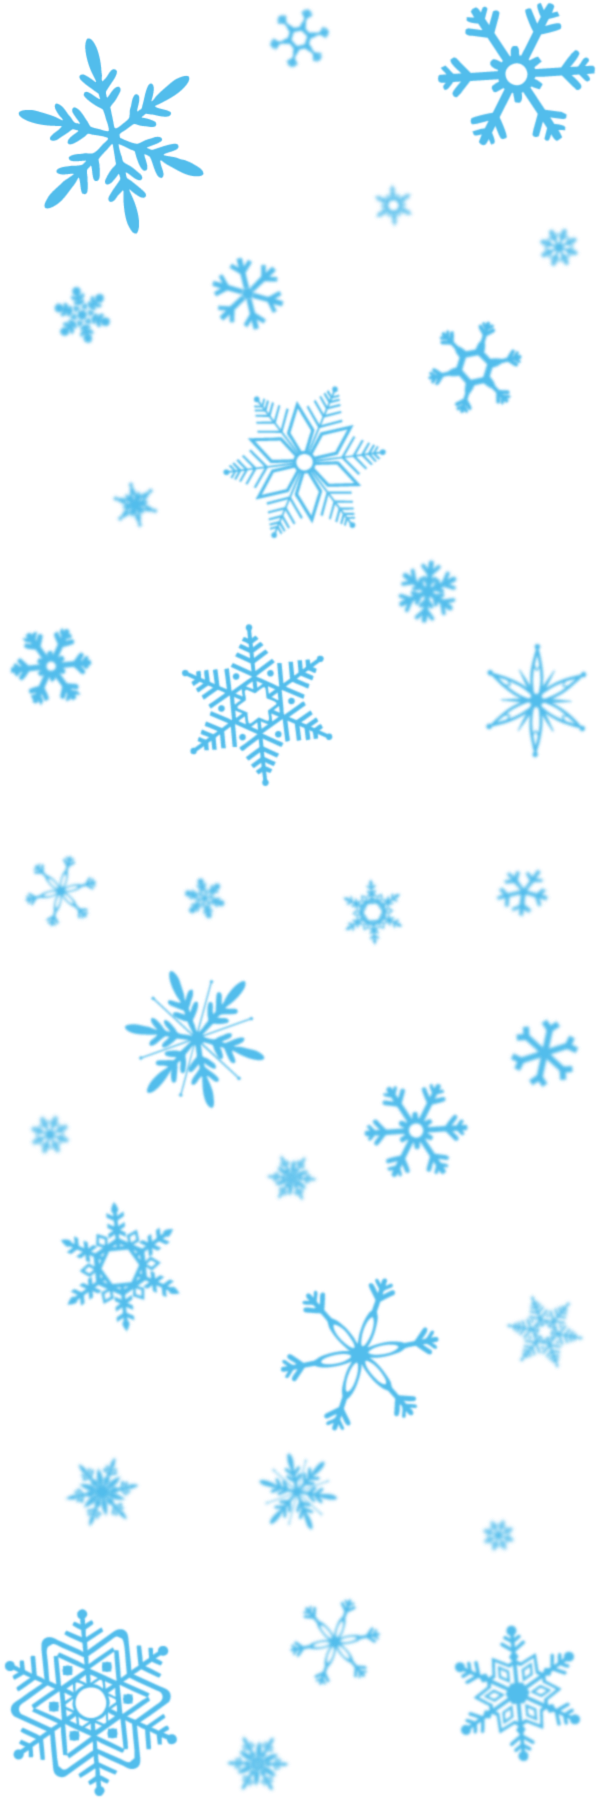 Snowflake border png clipart royalty free download Snowflakes Transparent PNG Pictures - Free Icons and PNG Backgrounds royalty free download